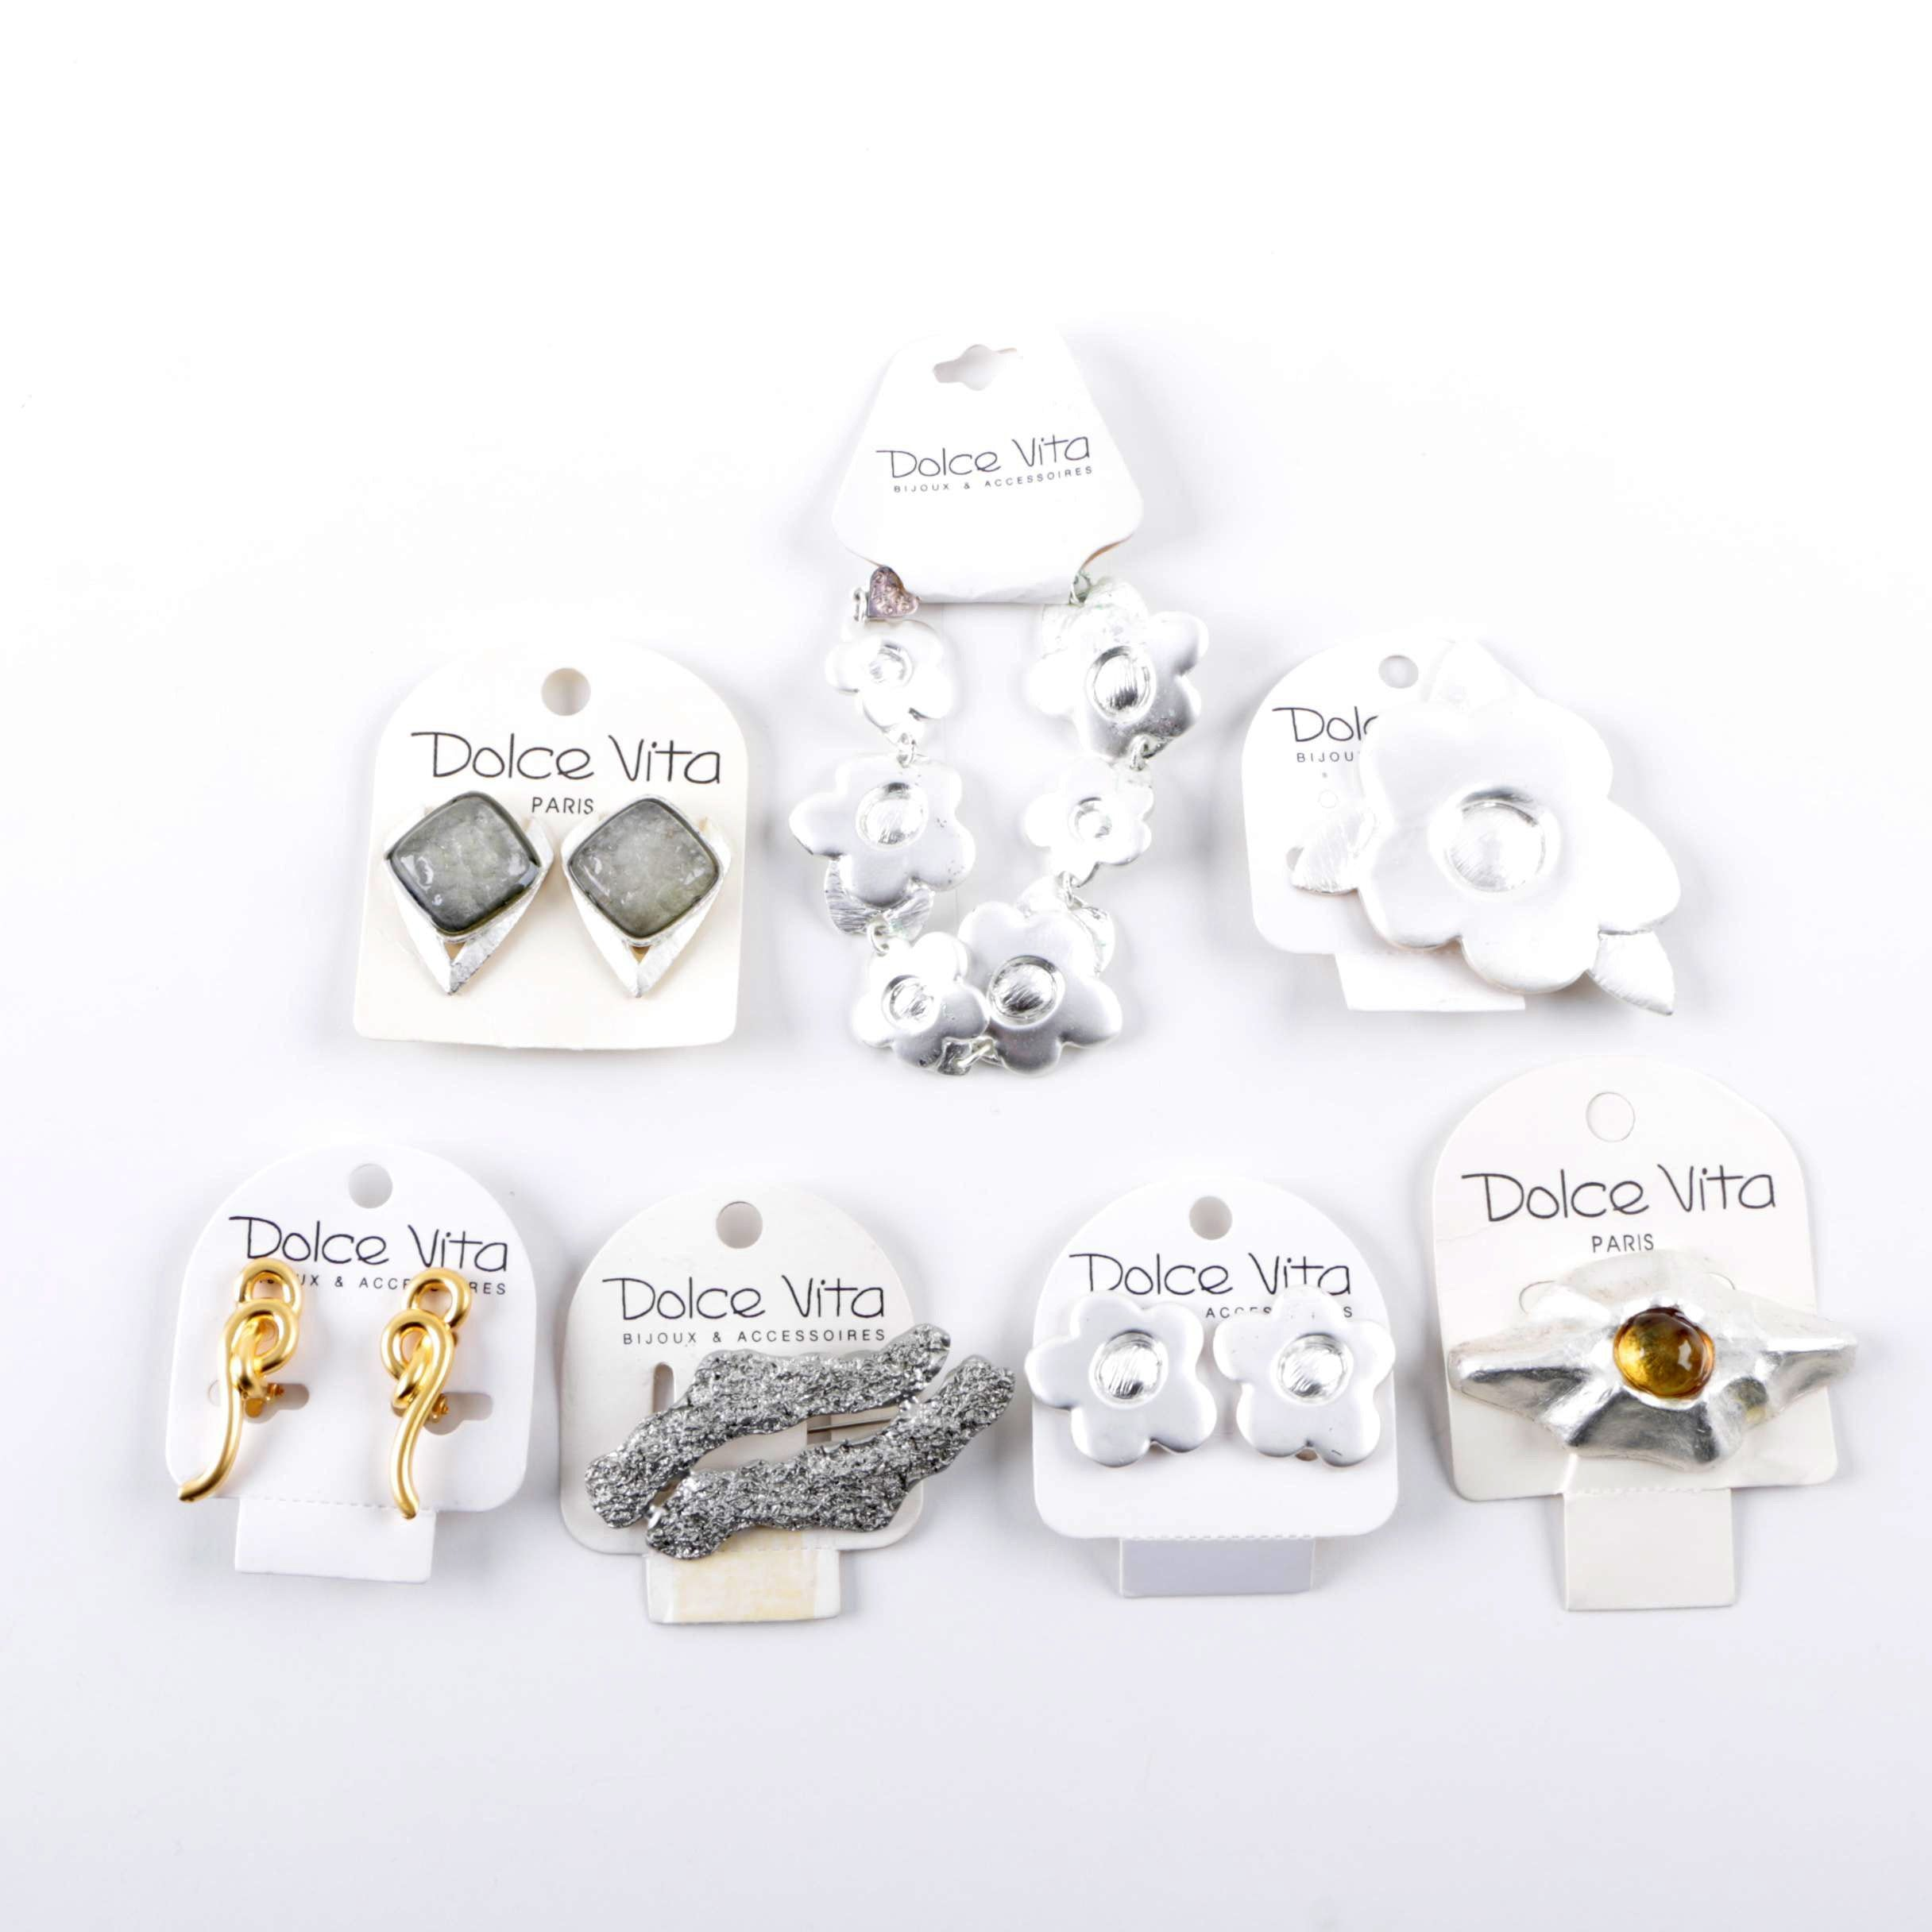 Selection of Dolce Vita Silver and Gold Tone Jewelry Including Glass Accents